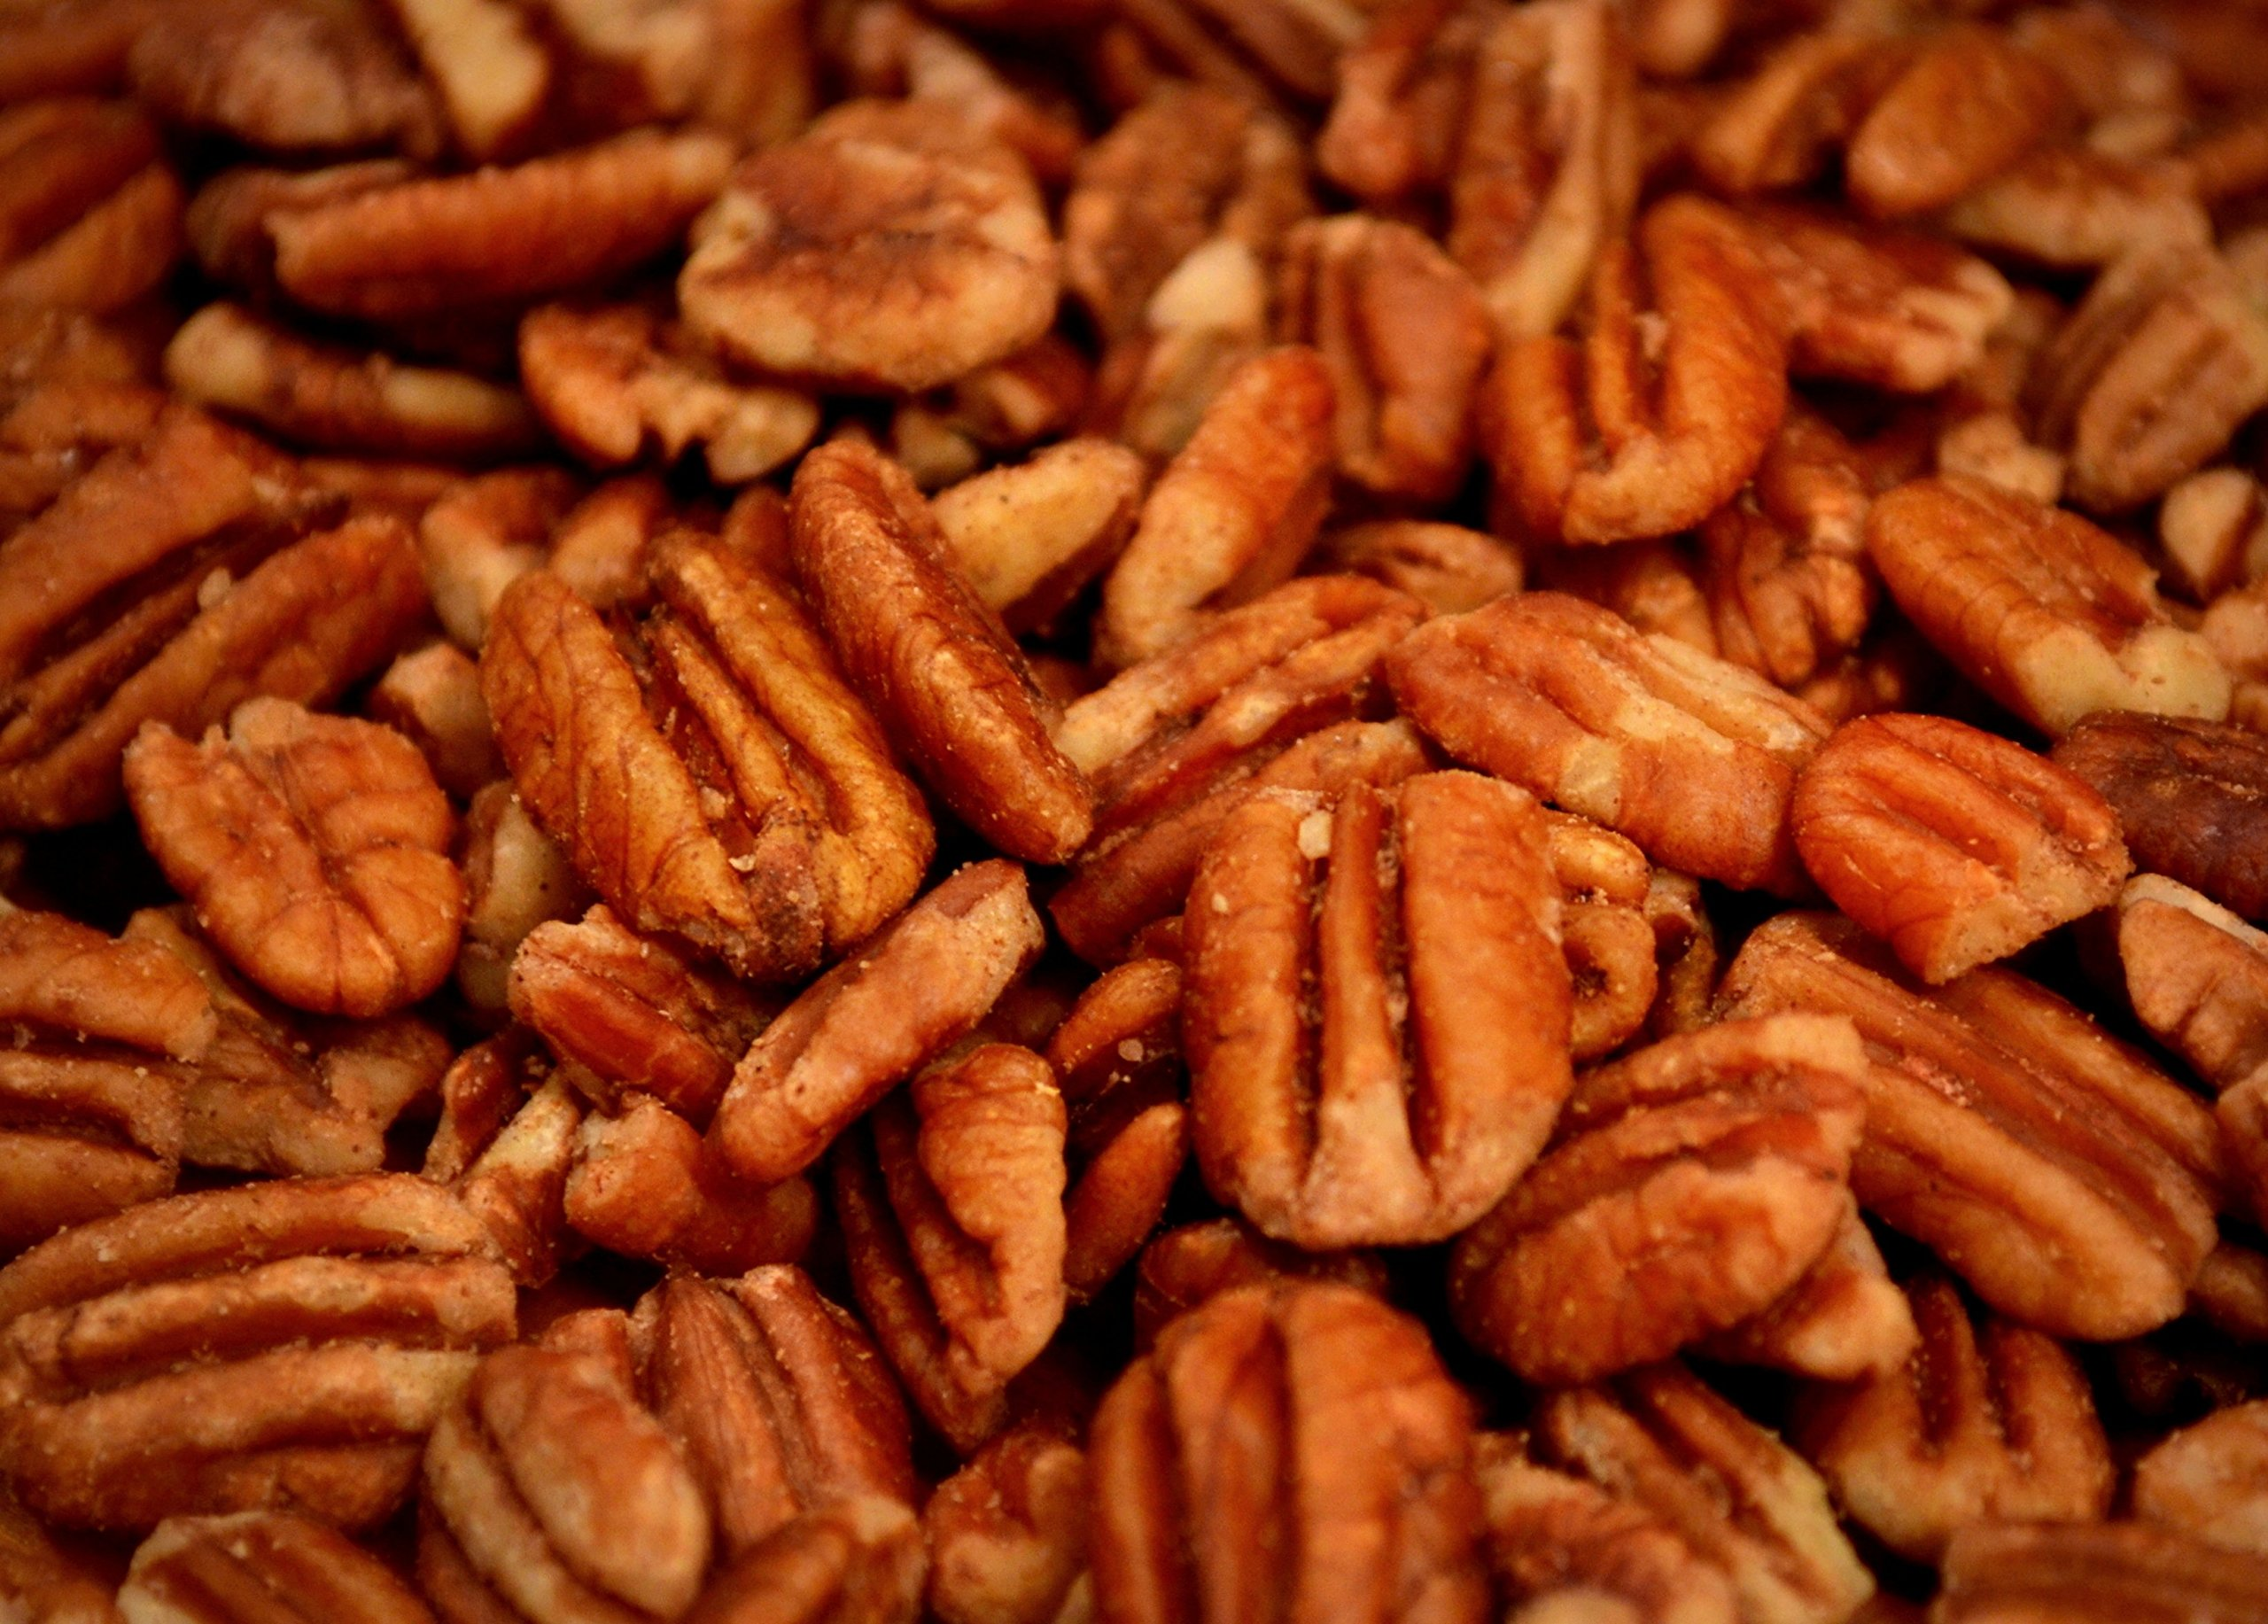 Unsprayed Sprouted 12 oz Raw Certified Organic Family Recipe Crispy Sea Salt Texas Native Pecans-Fresh Direct Ship